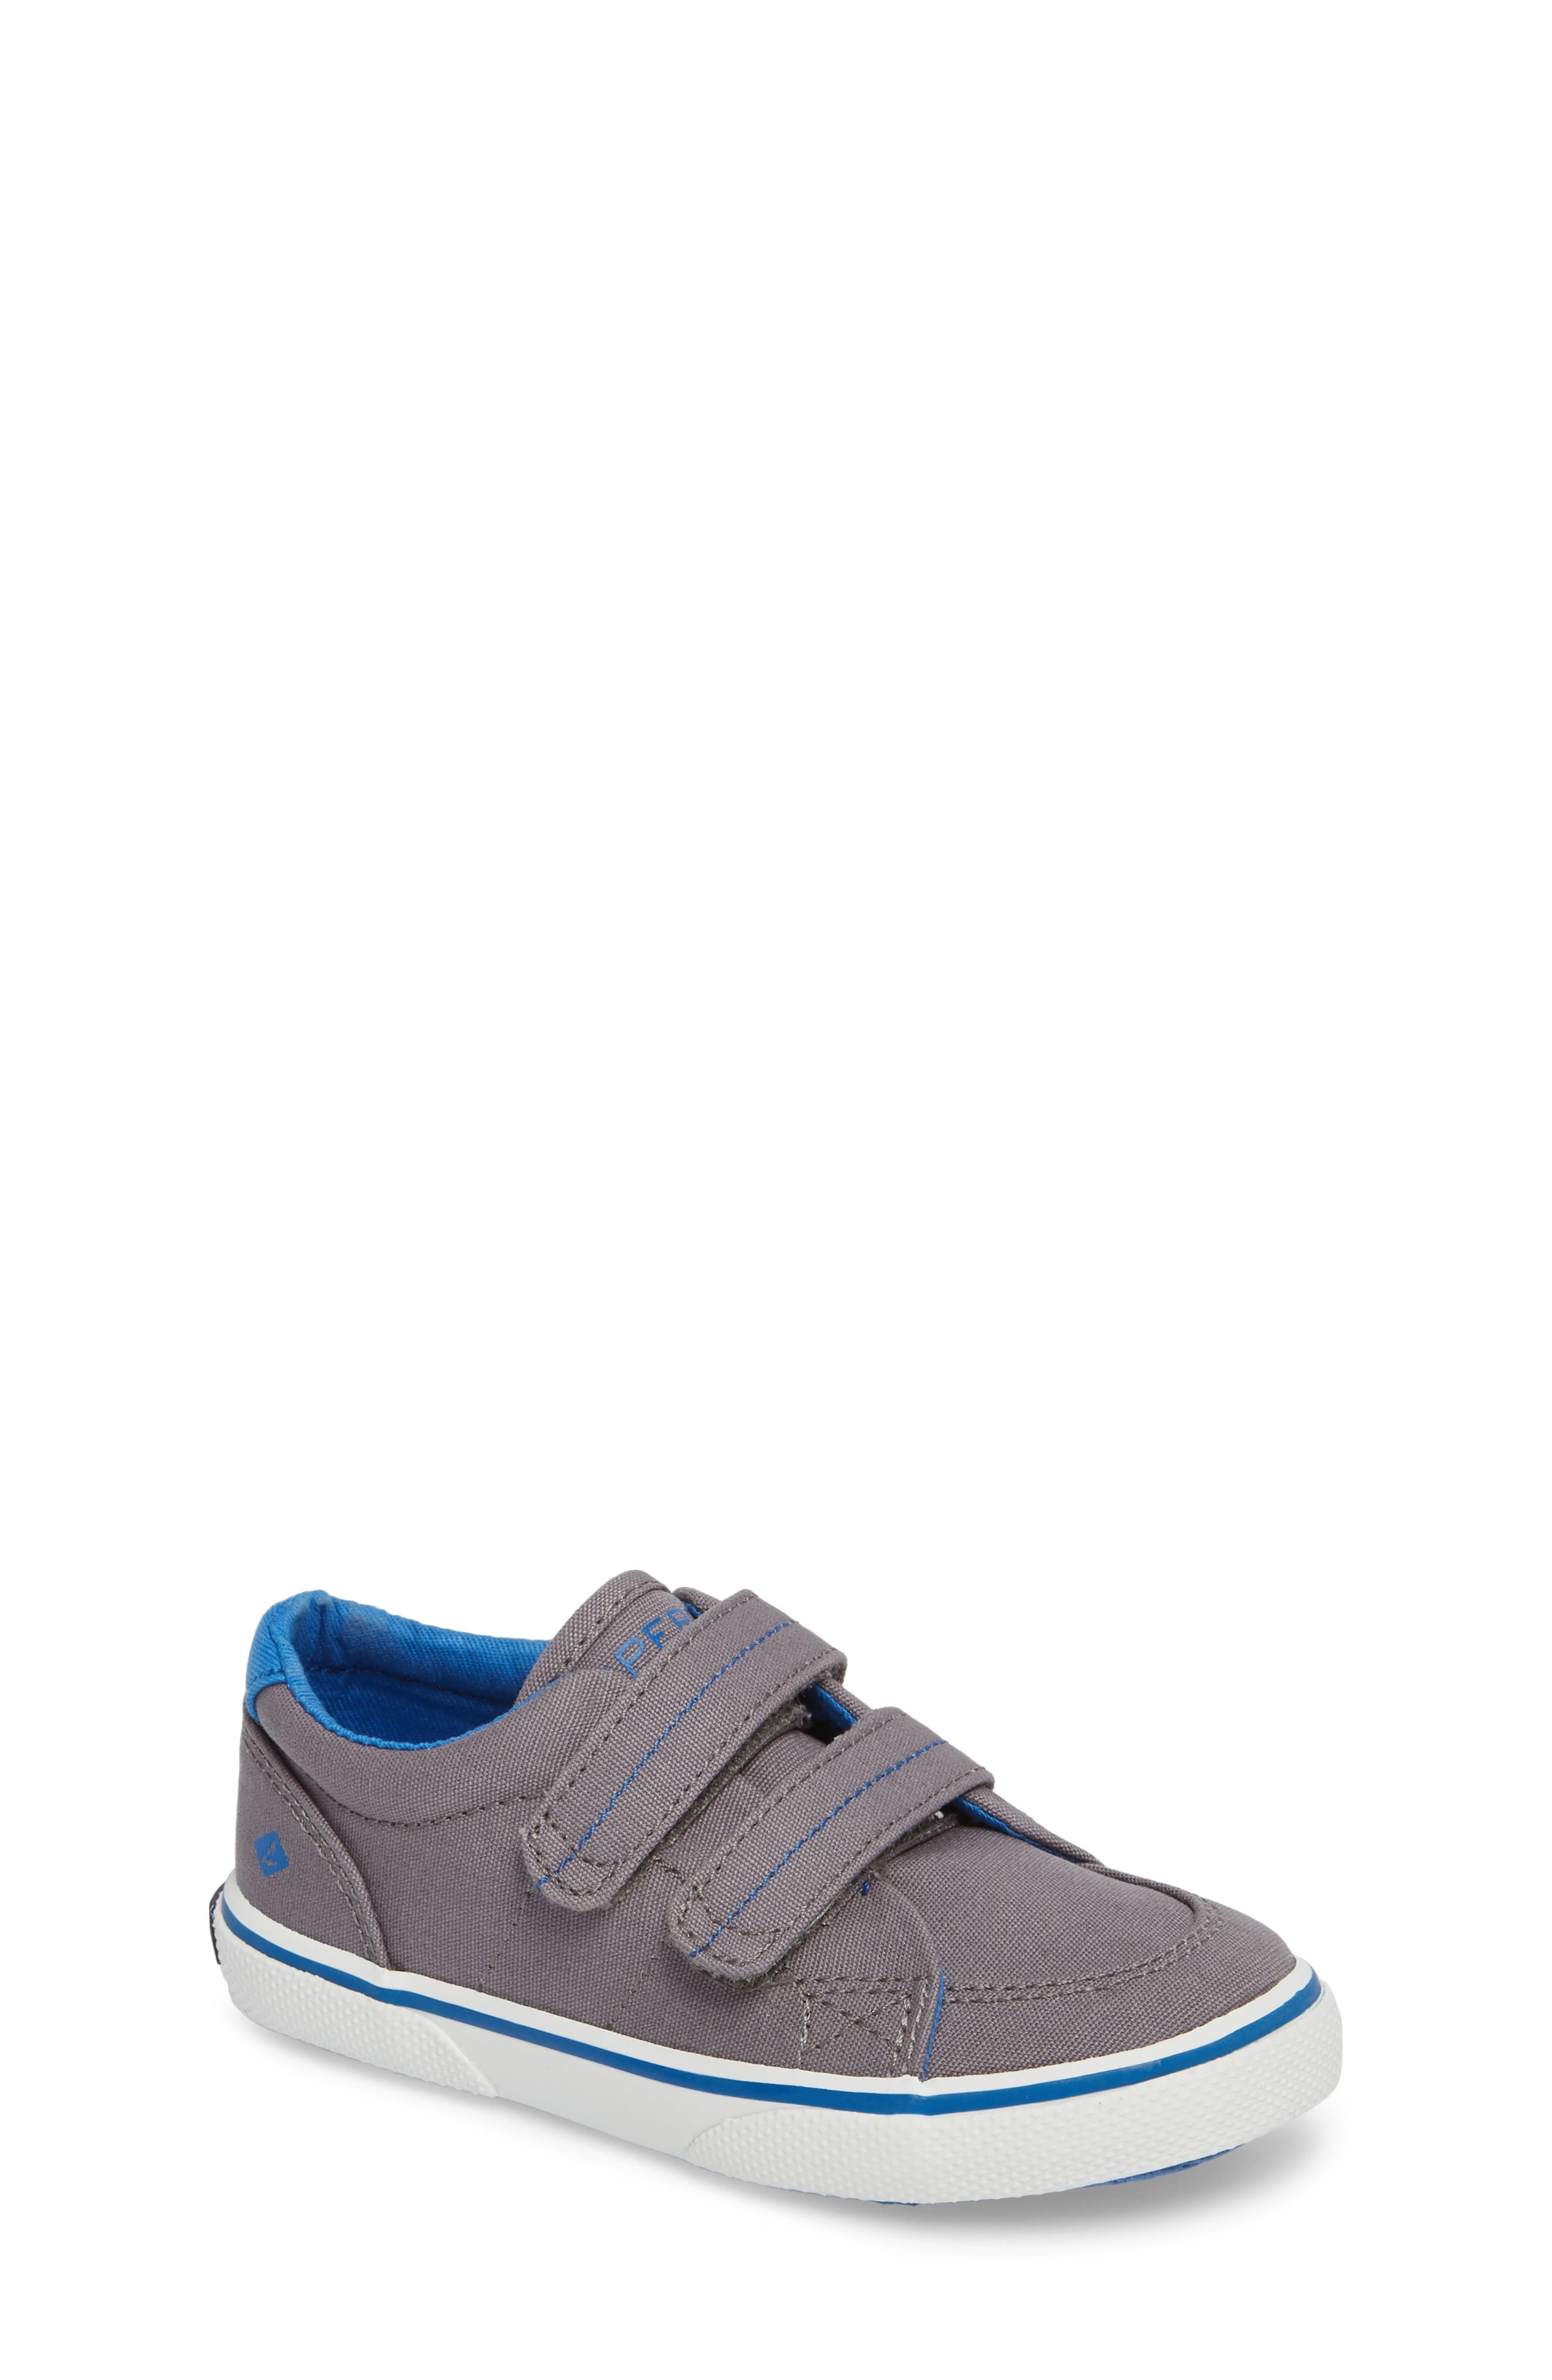 Sperry Top-Sider<sup>®</sup> Kids 'Halyard' Sneaker,                         Main,                         color,